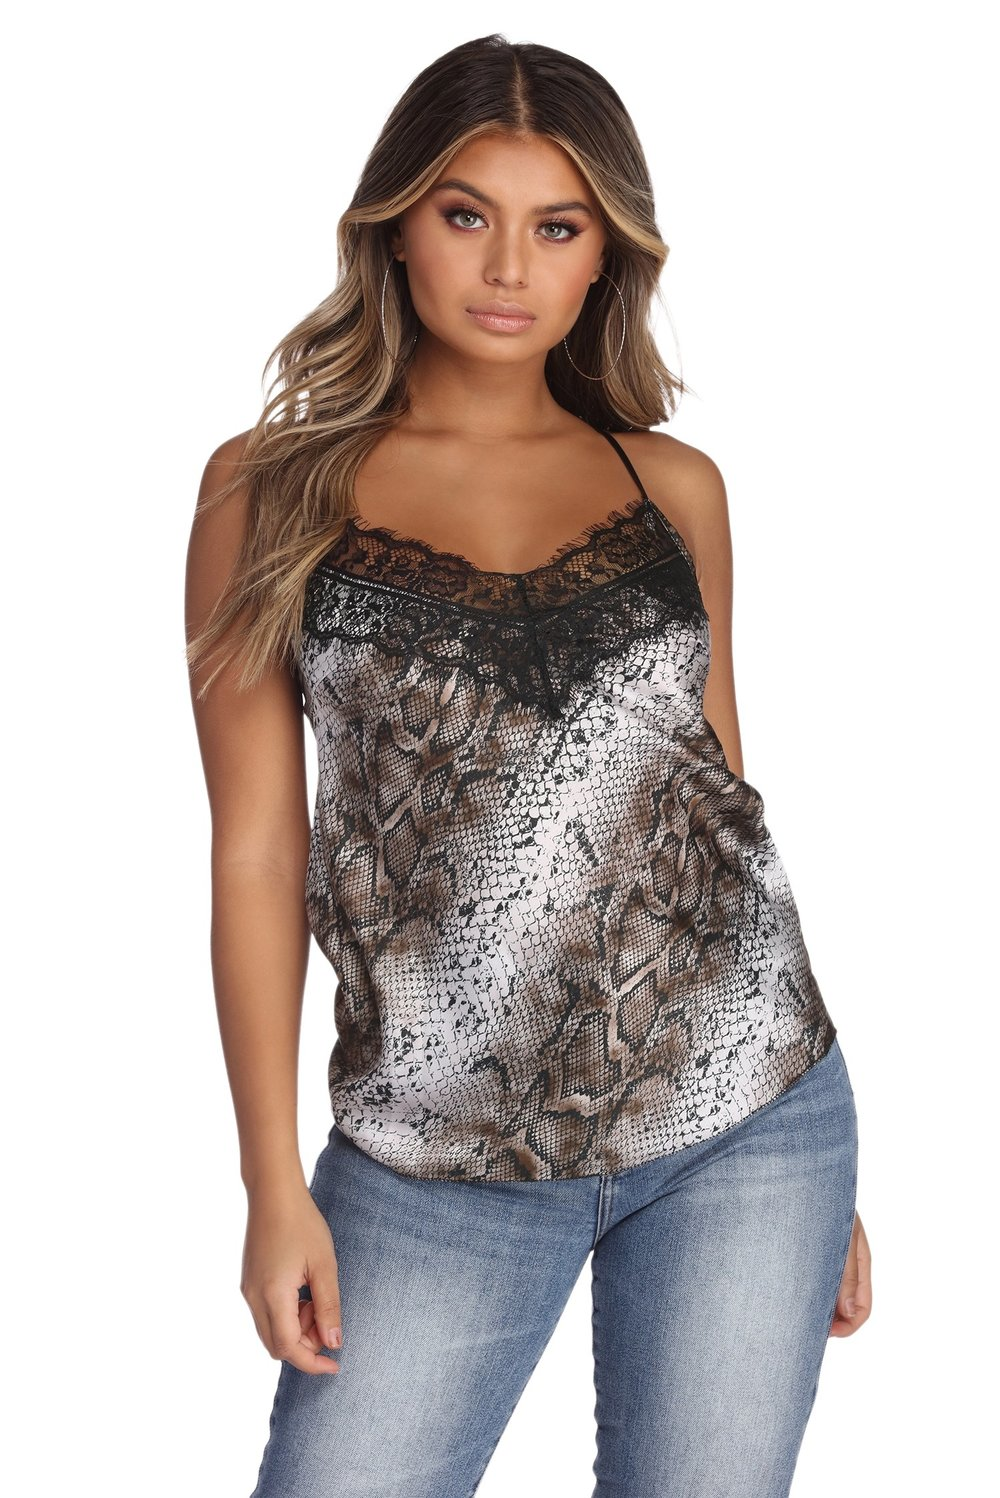 Windsor also has this snake skin & lace cami I am drooling over at the moment!